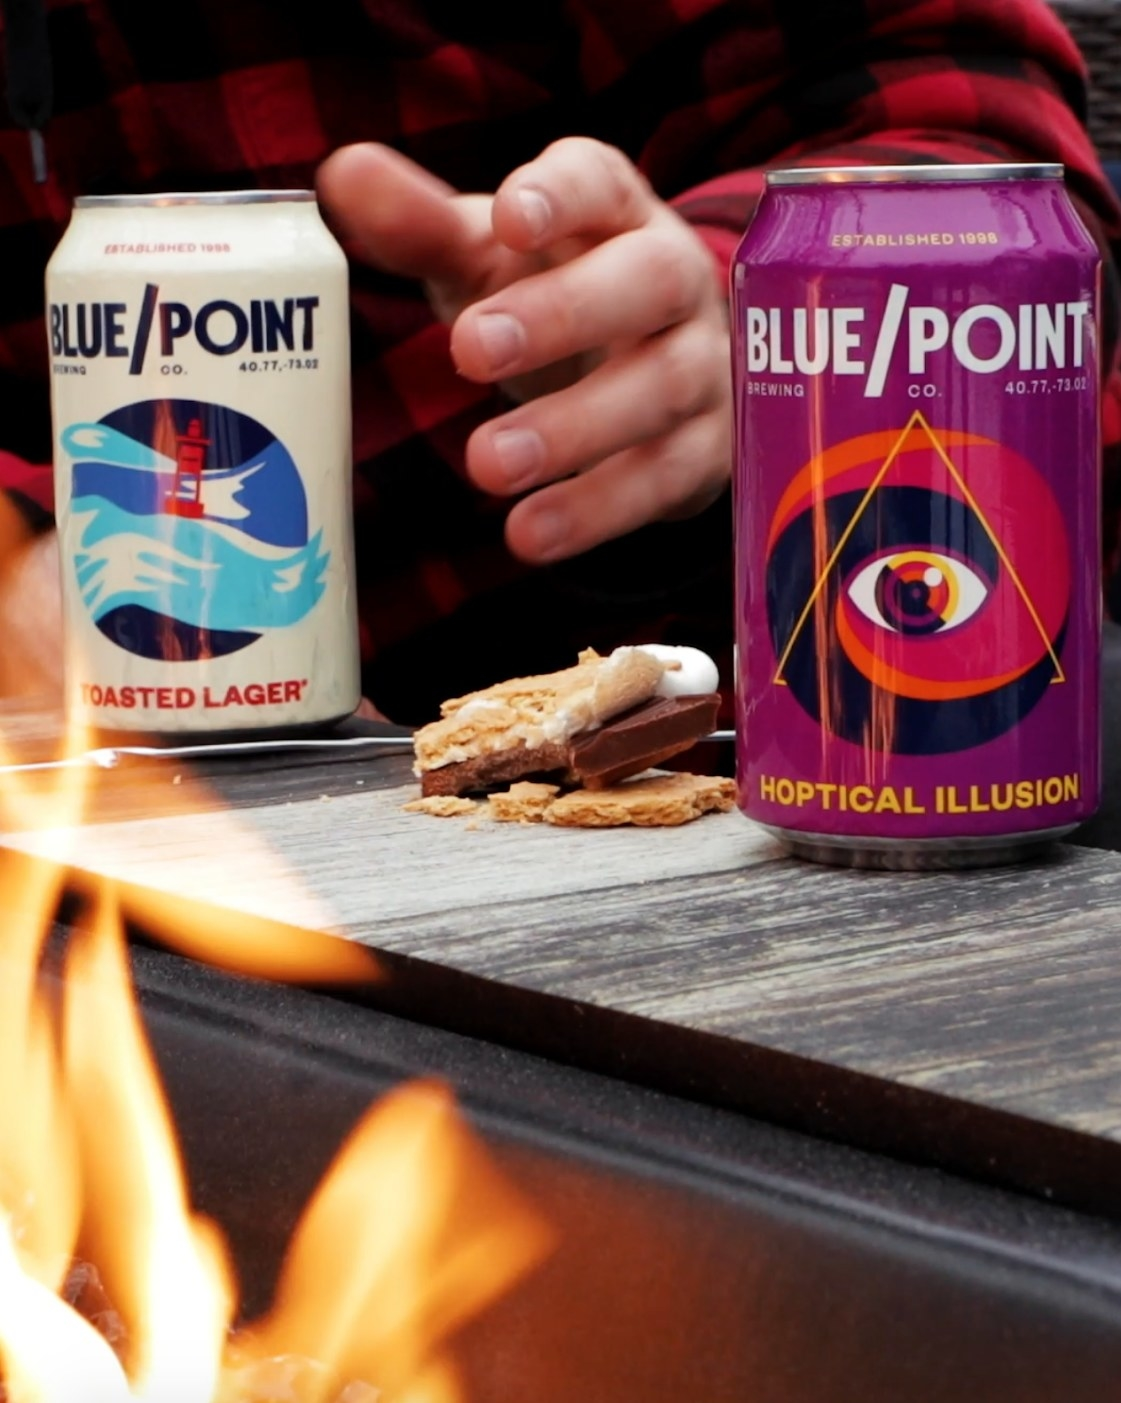 The Blue Point Brewing Toasted Lager and Hoptical Illusions